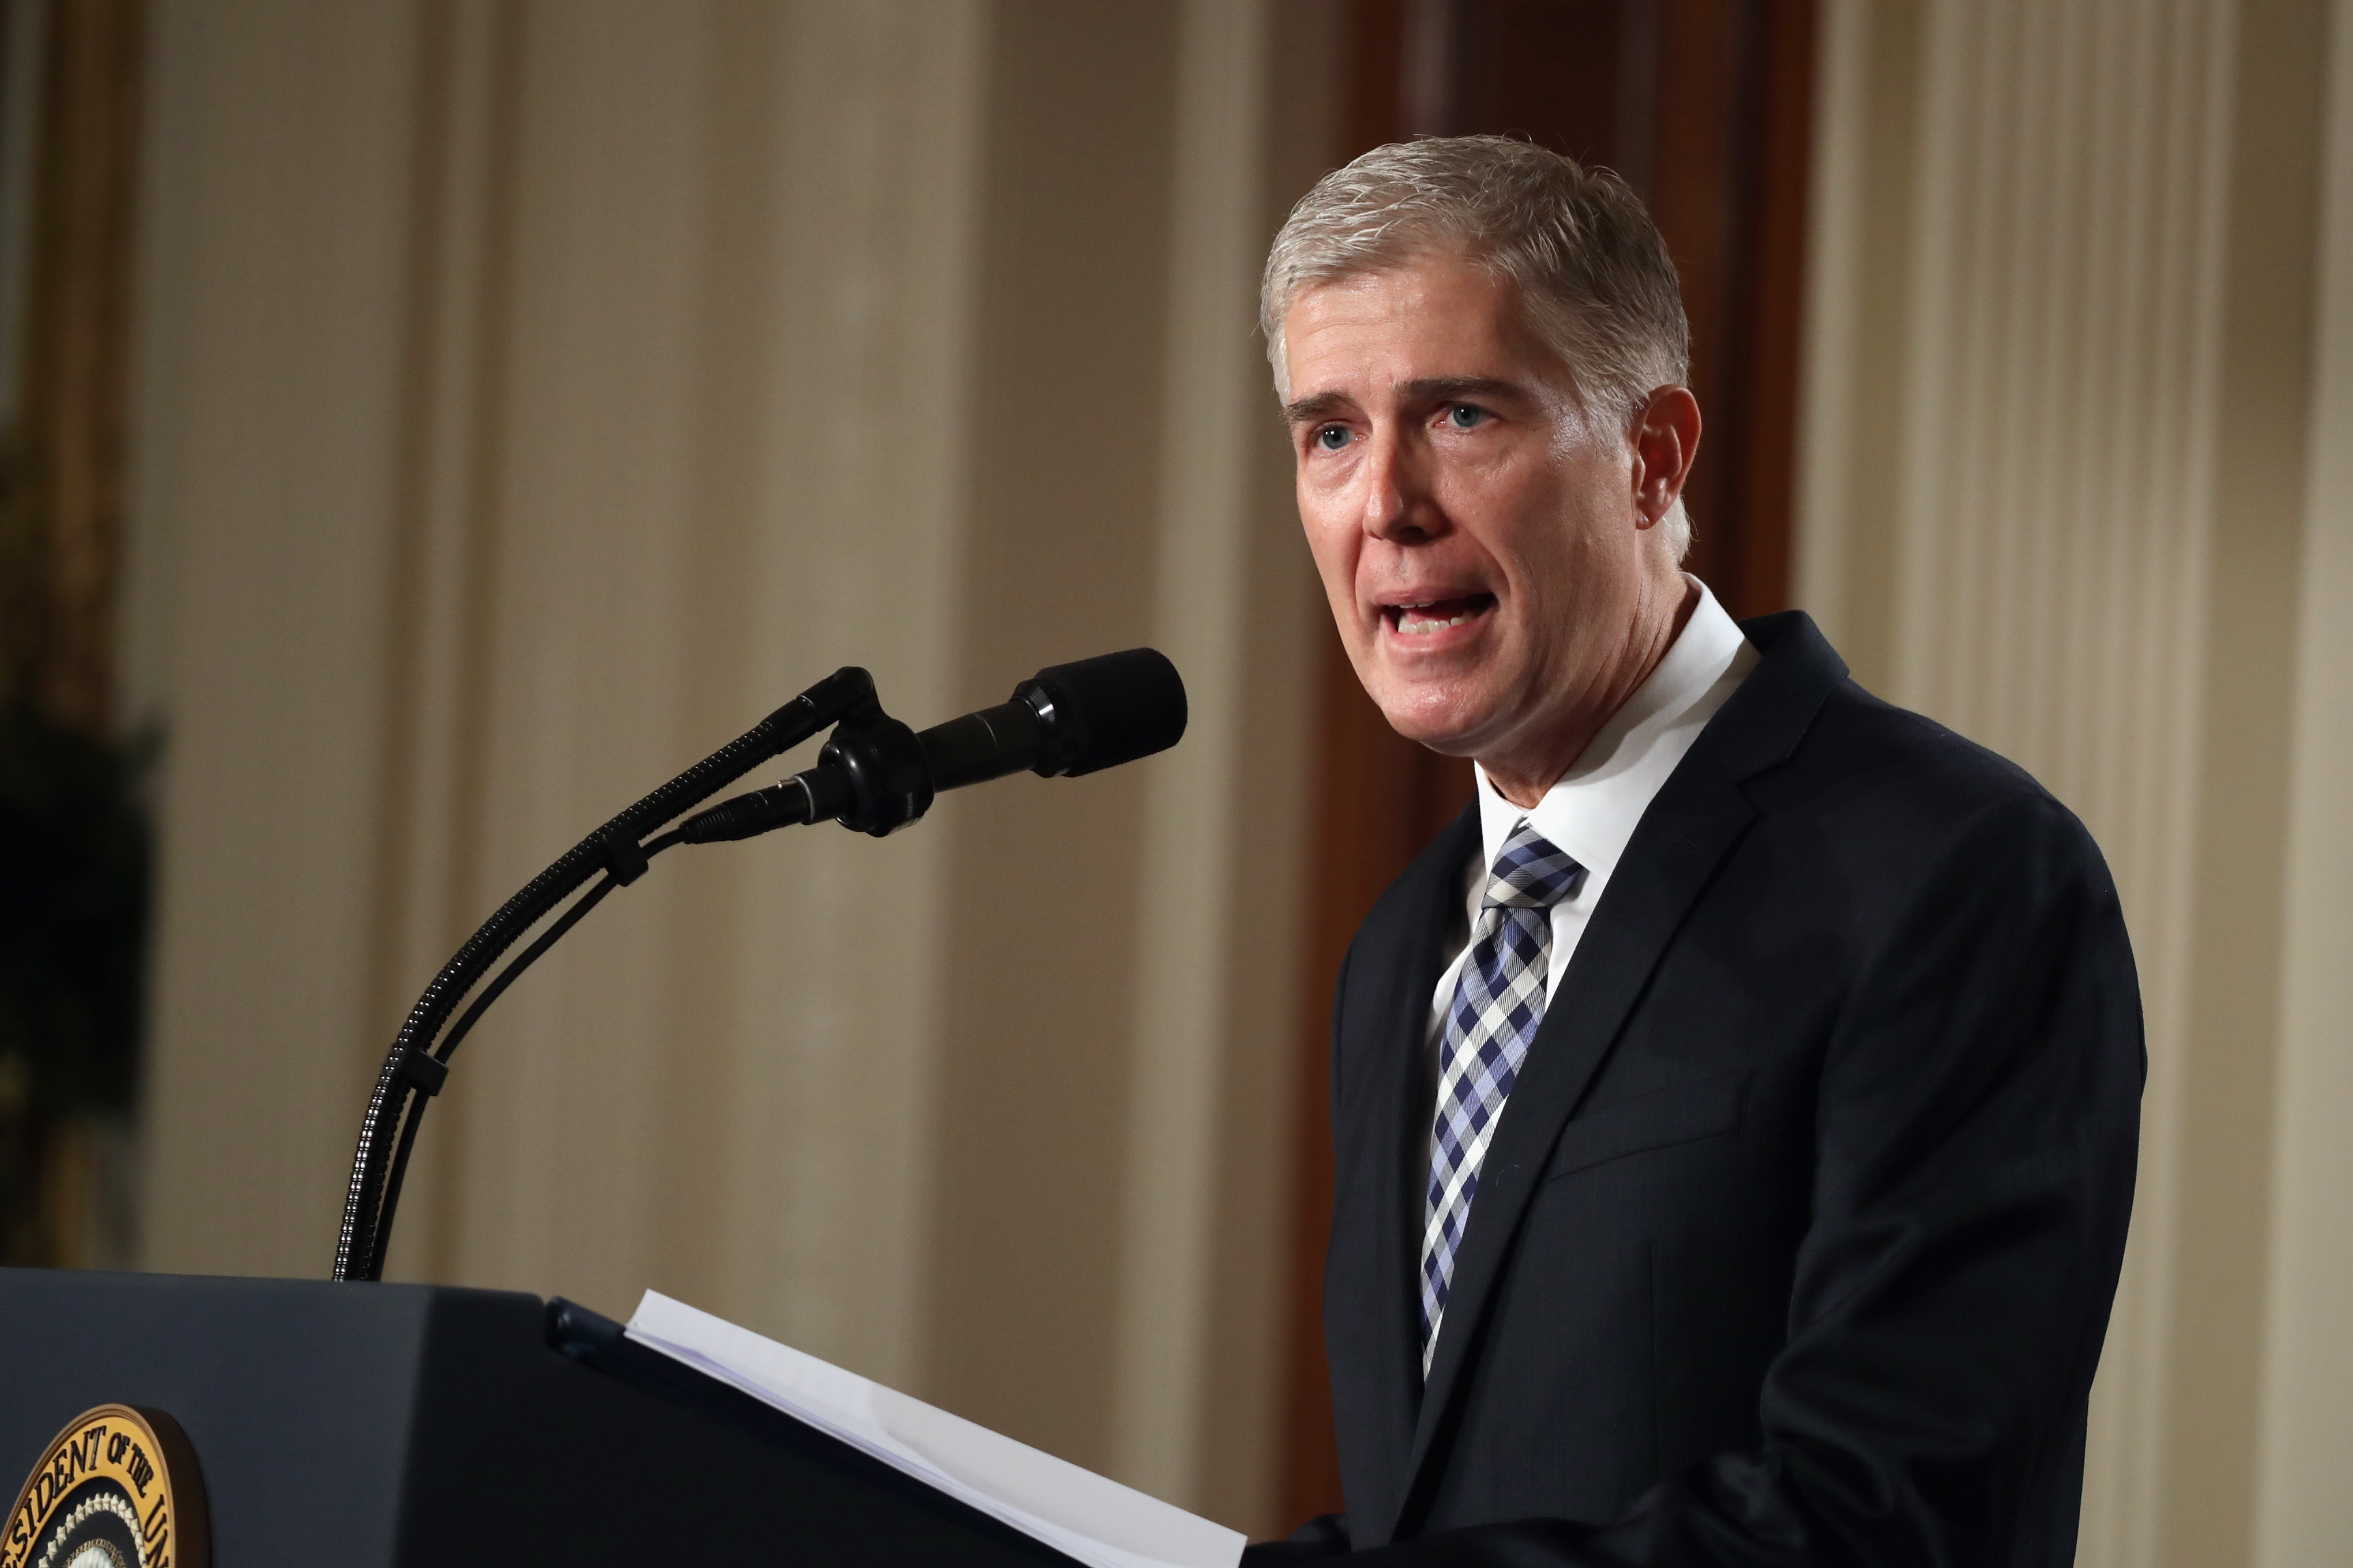 Judge Neil Gorsuch delivers brief remarks after being nominated by U.S. President Donald Trump to the Supreme Court, on Jan. 31, 2017.